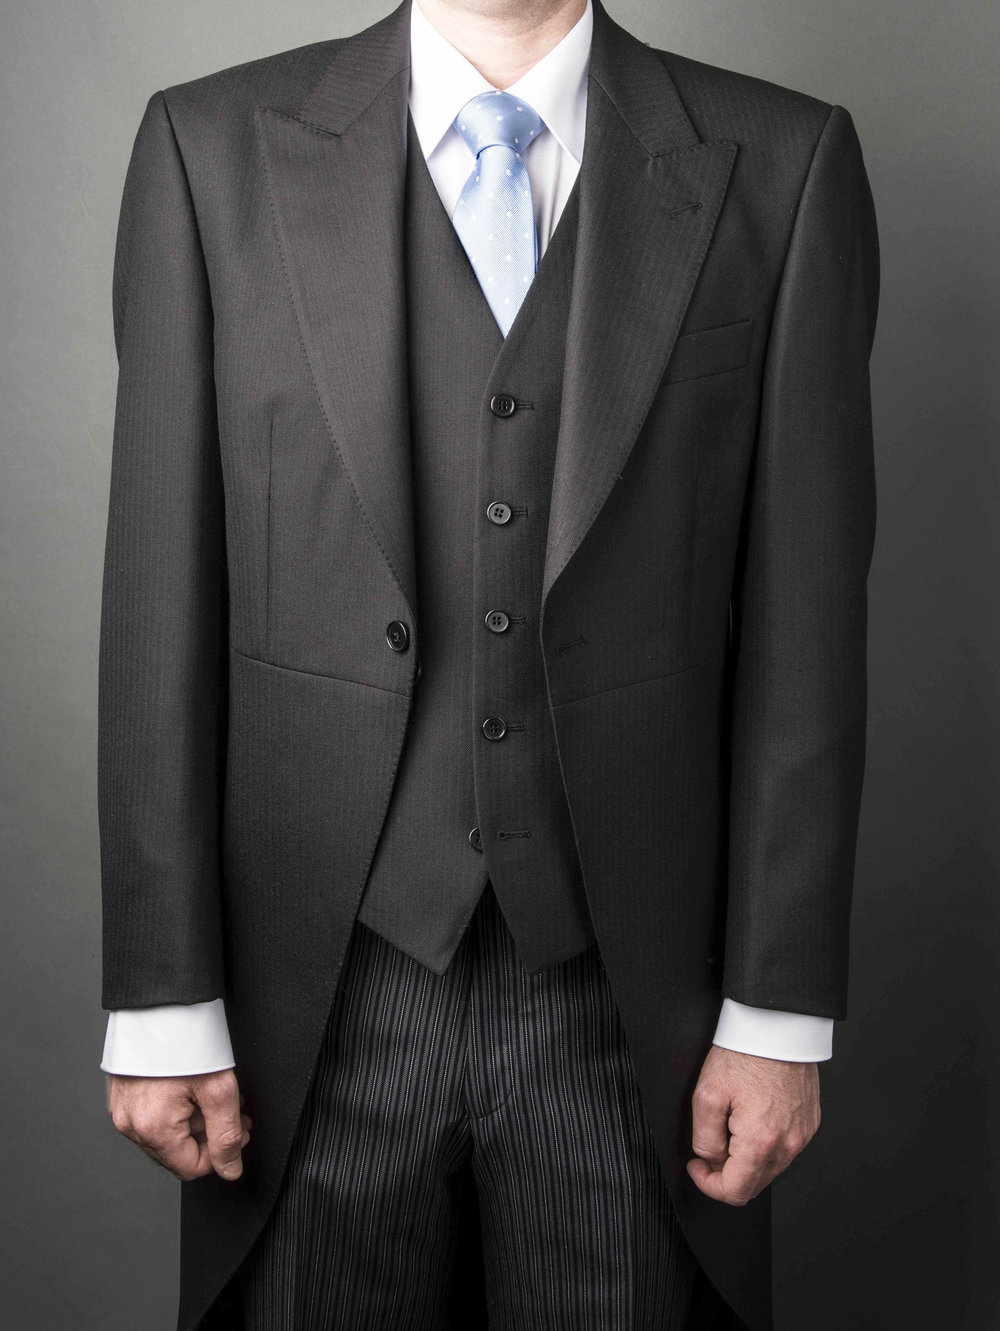 Man's wedding suit at Symonds in Hereford